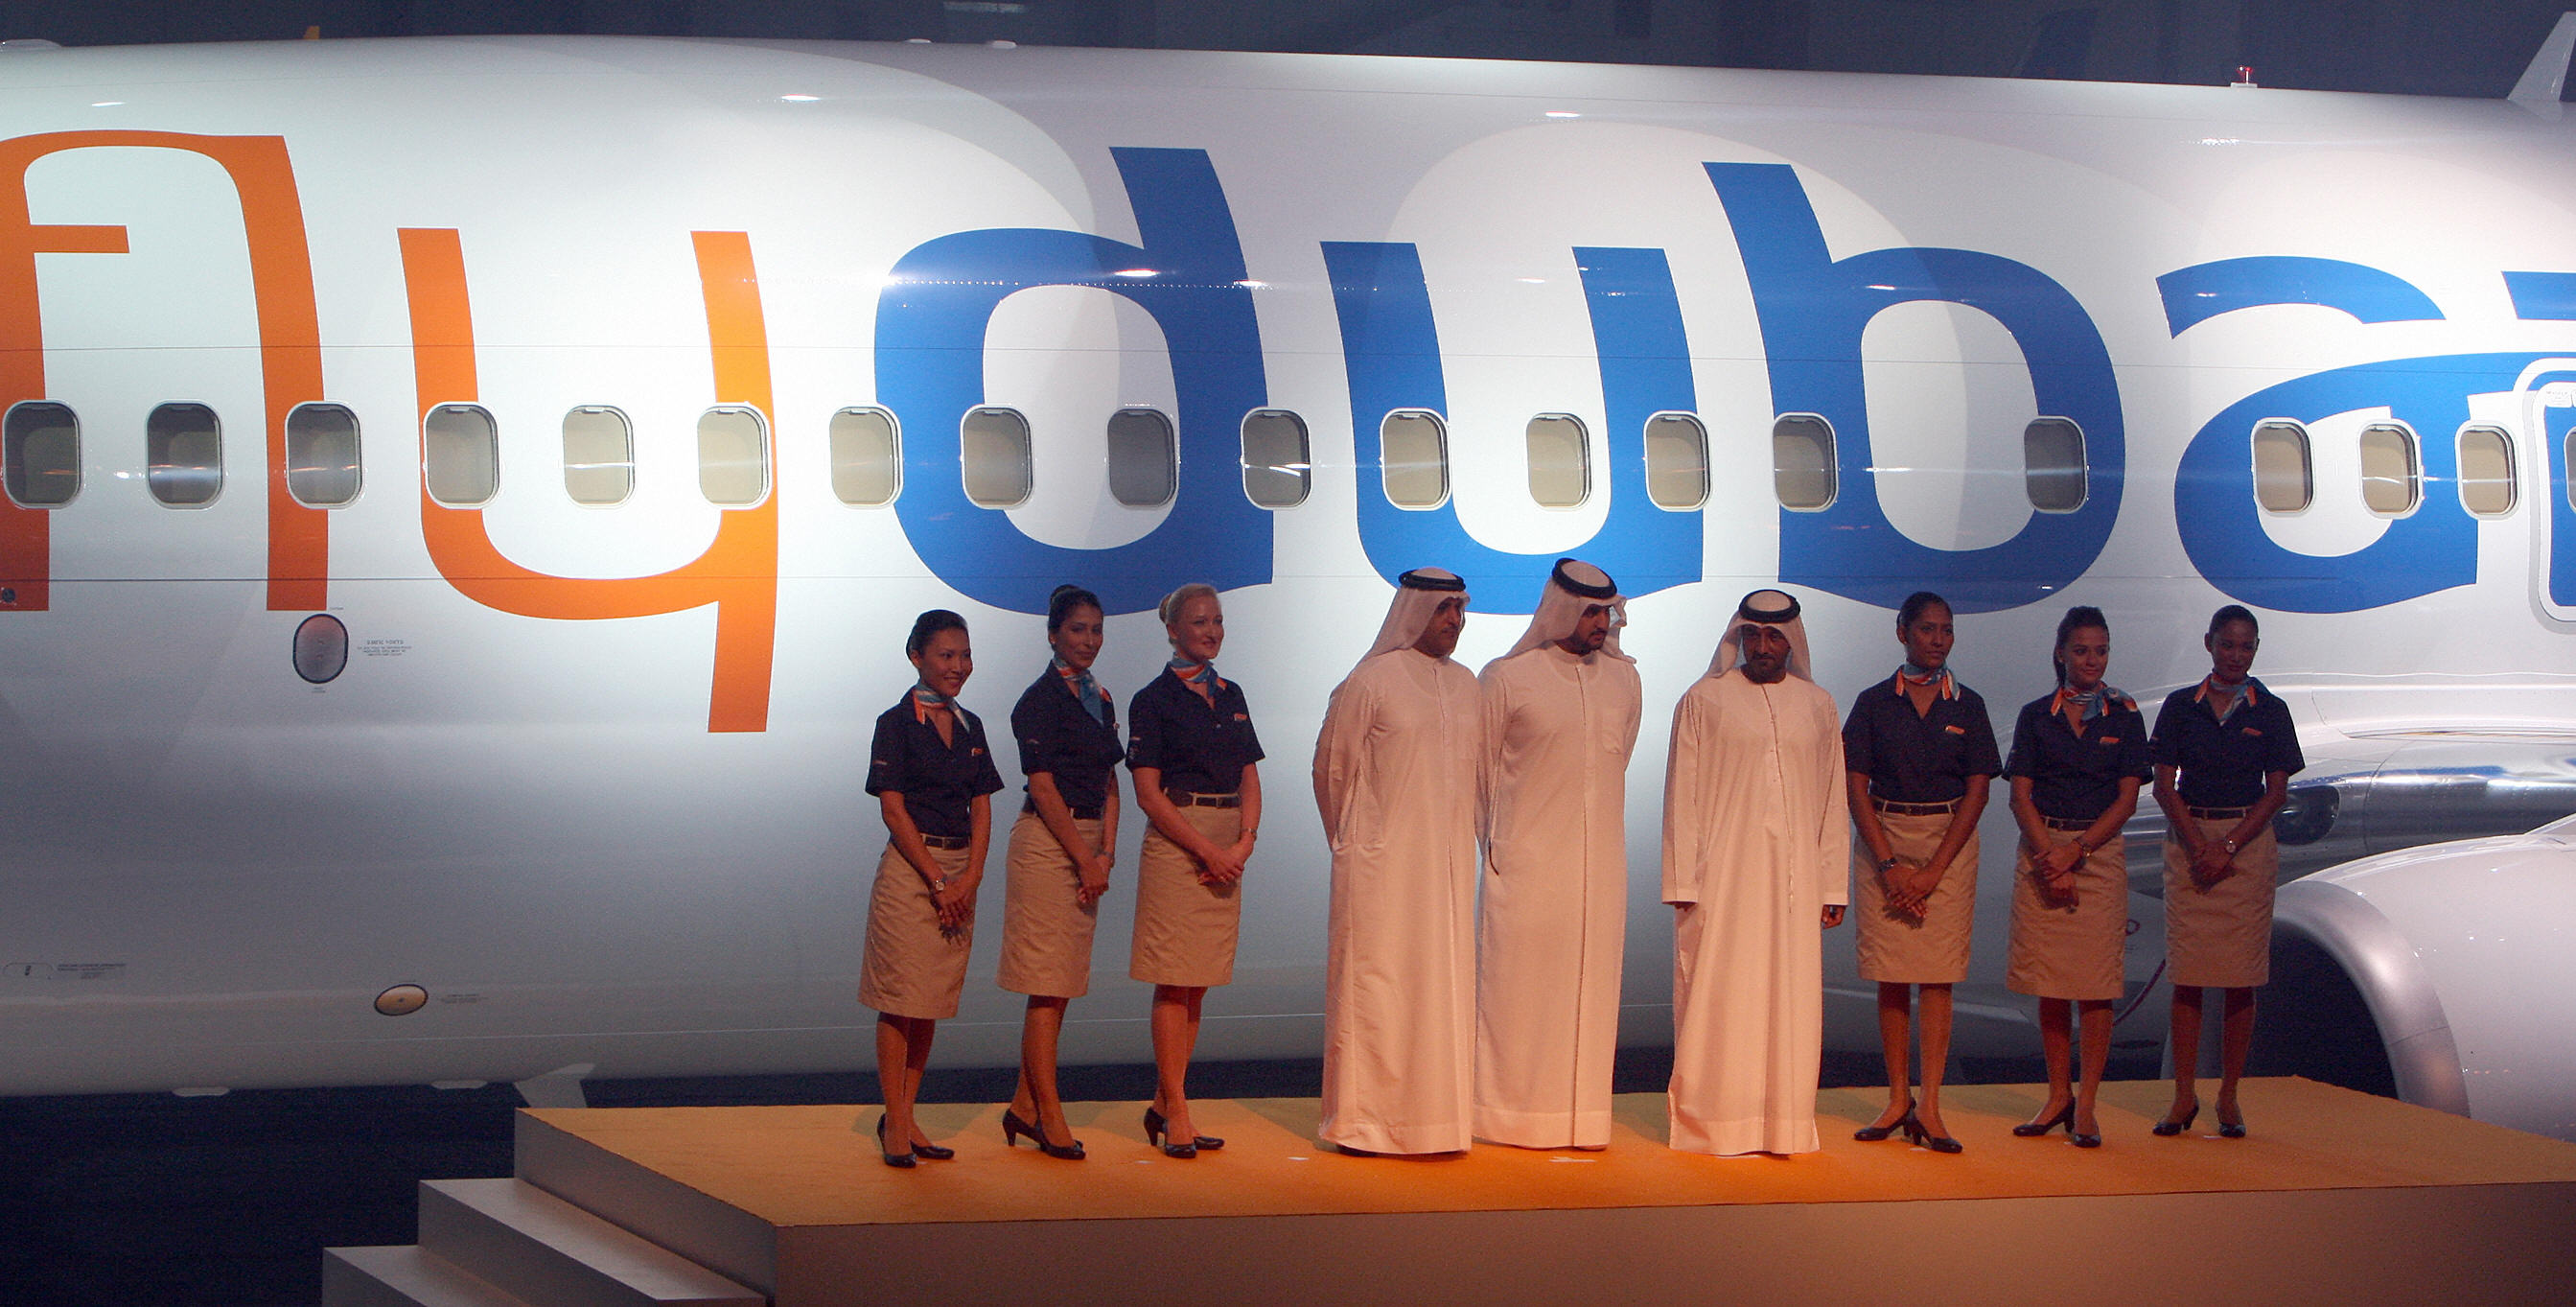 Airline staff pose in front of a flydubai Boeing 737-800 Next Generation aircraft during a ceremony in the Gulf emirate ahead of the airline's debut flight to Beirut in 2009.